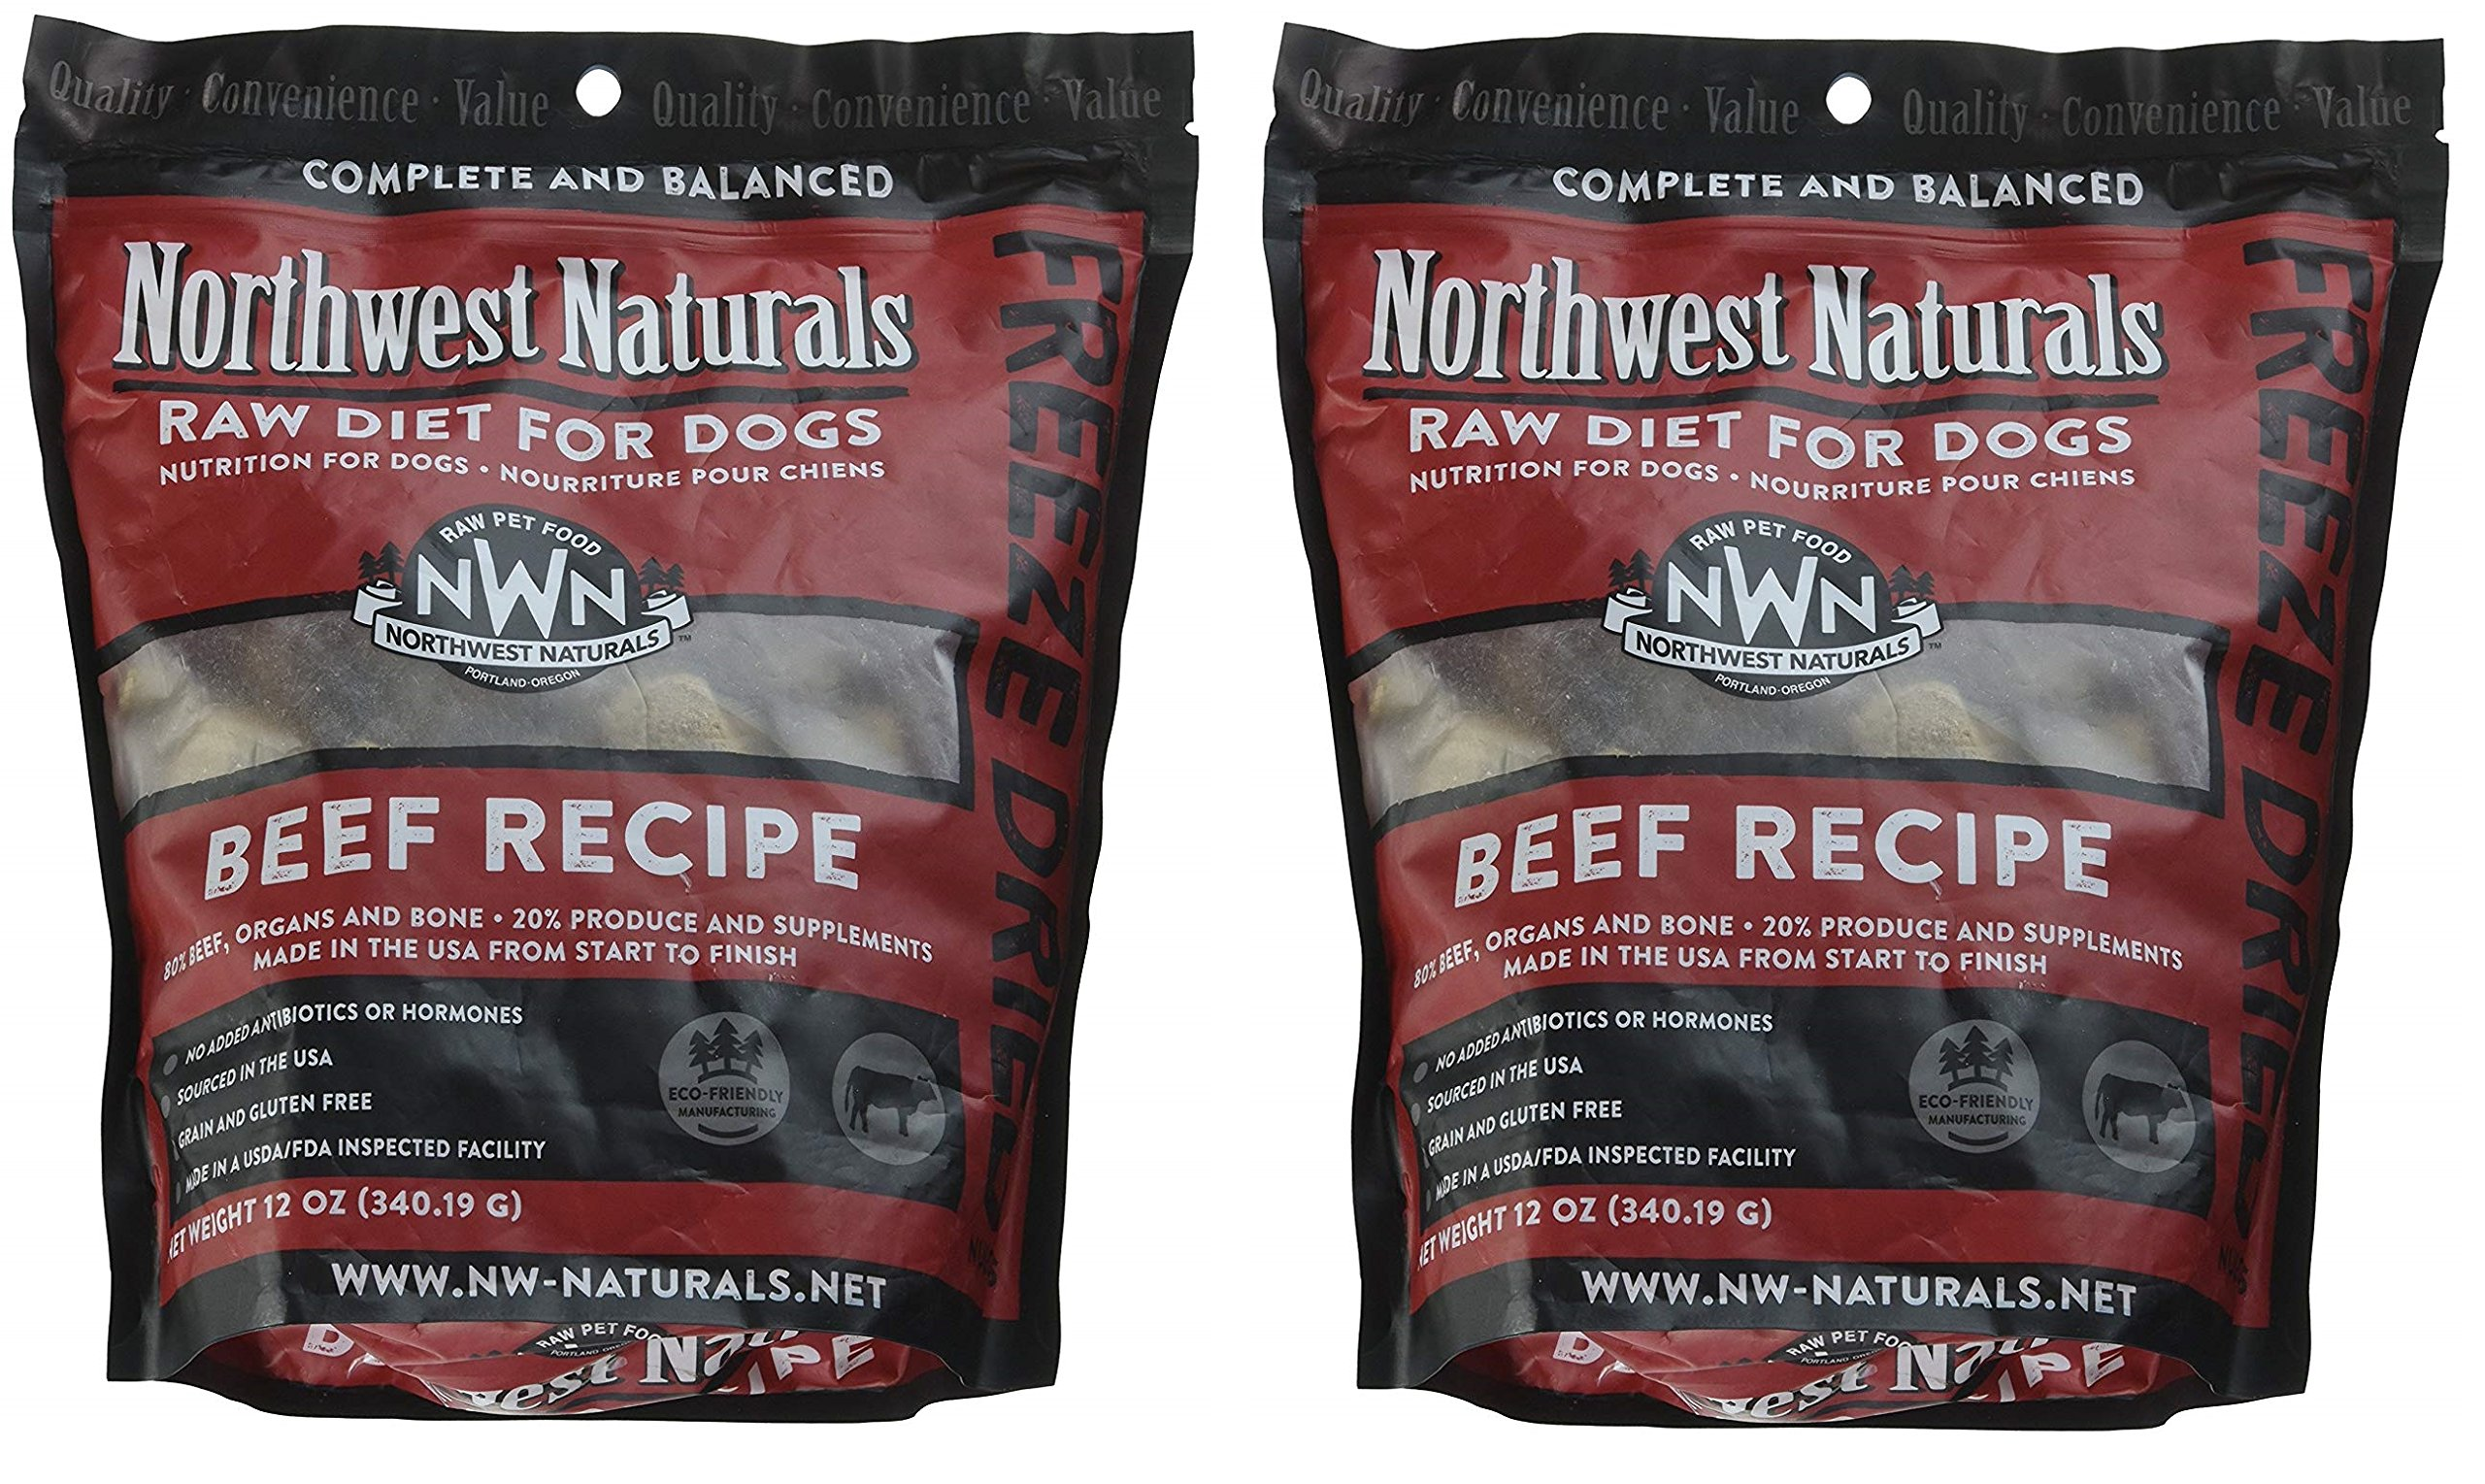 Northwest Naturals Freeze-Dried Raw Nugget Dog Food, 2 12-Ounce Bags, Beef Recipe, Made in The USA by Northwest Naturals